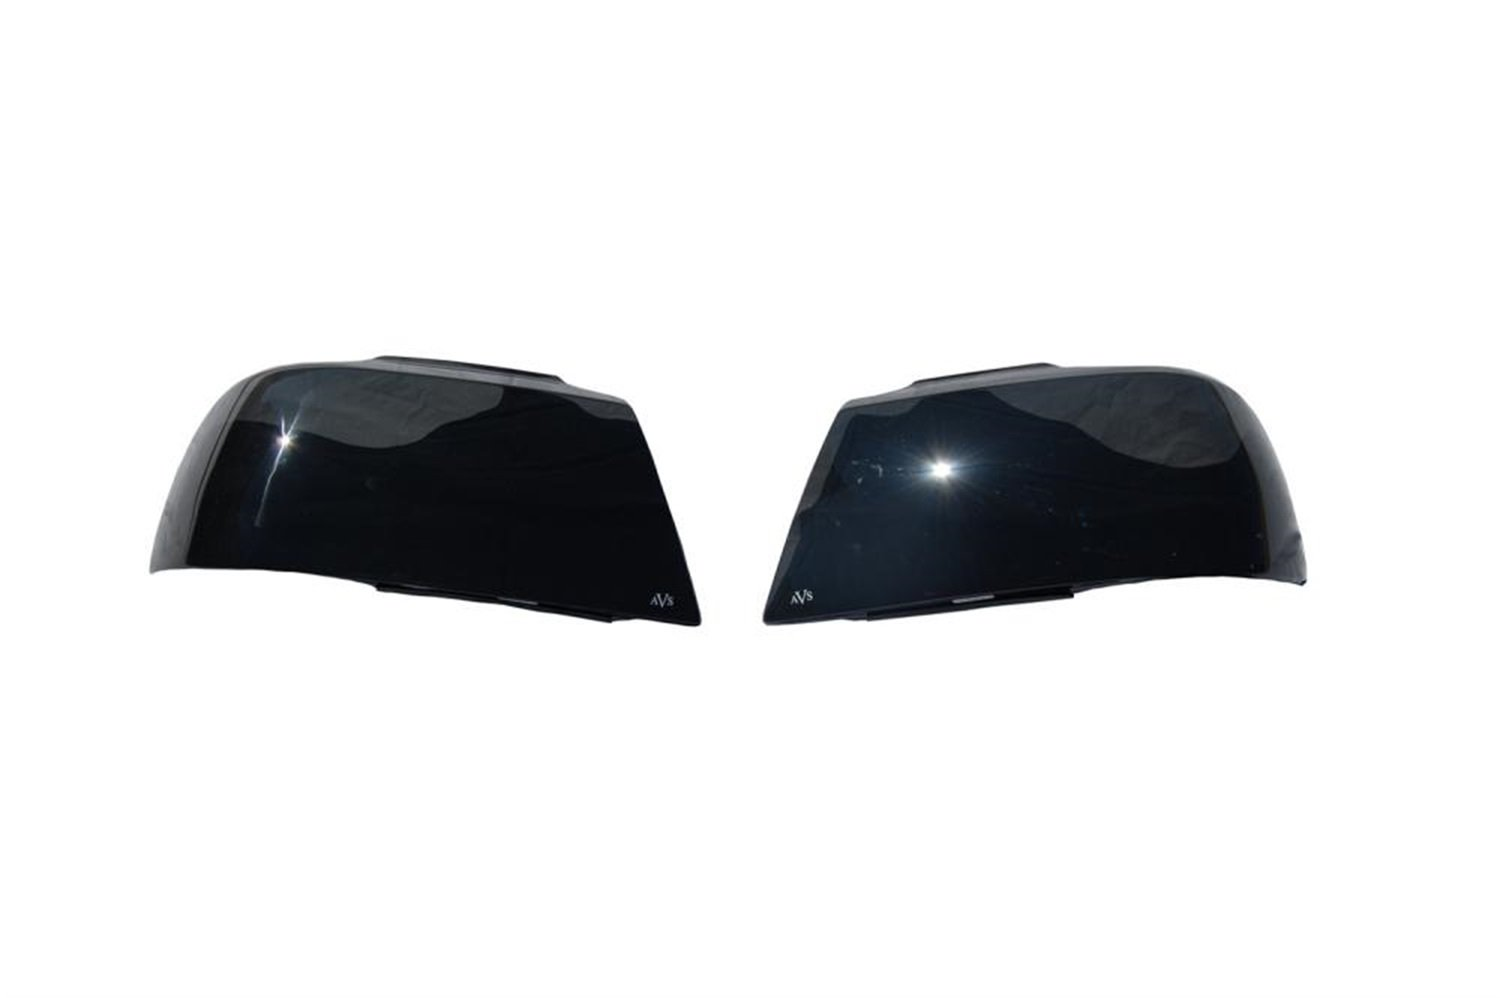 Auto Ventshade AVS 33559 Tailshades for Gmc Canyon and Chevy Colorado